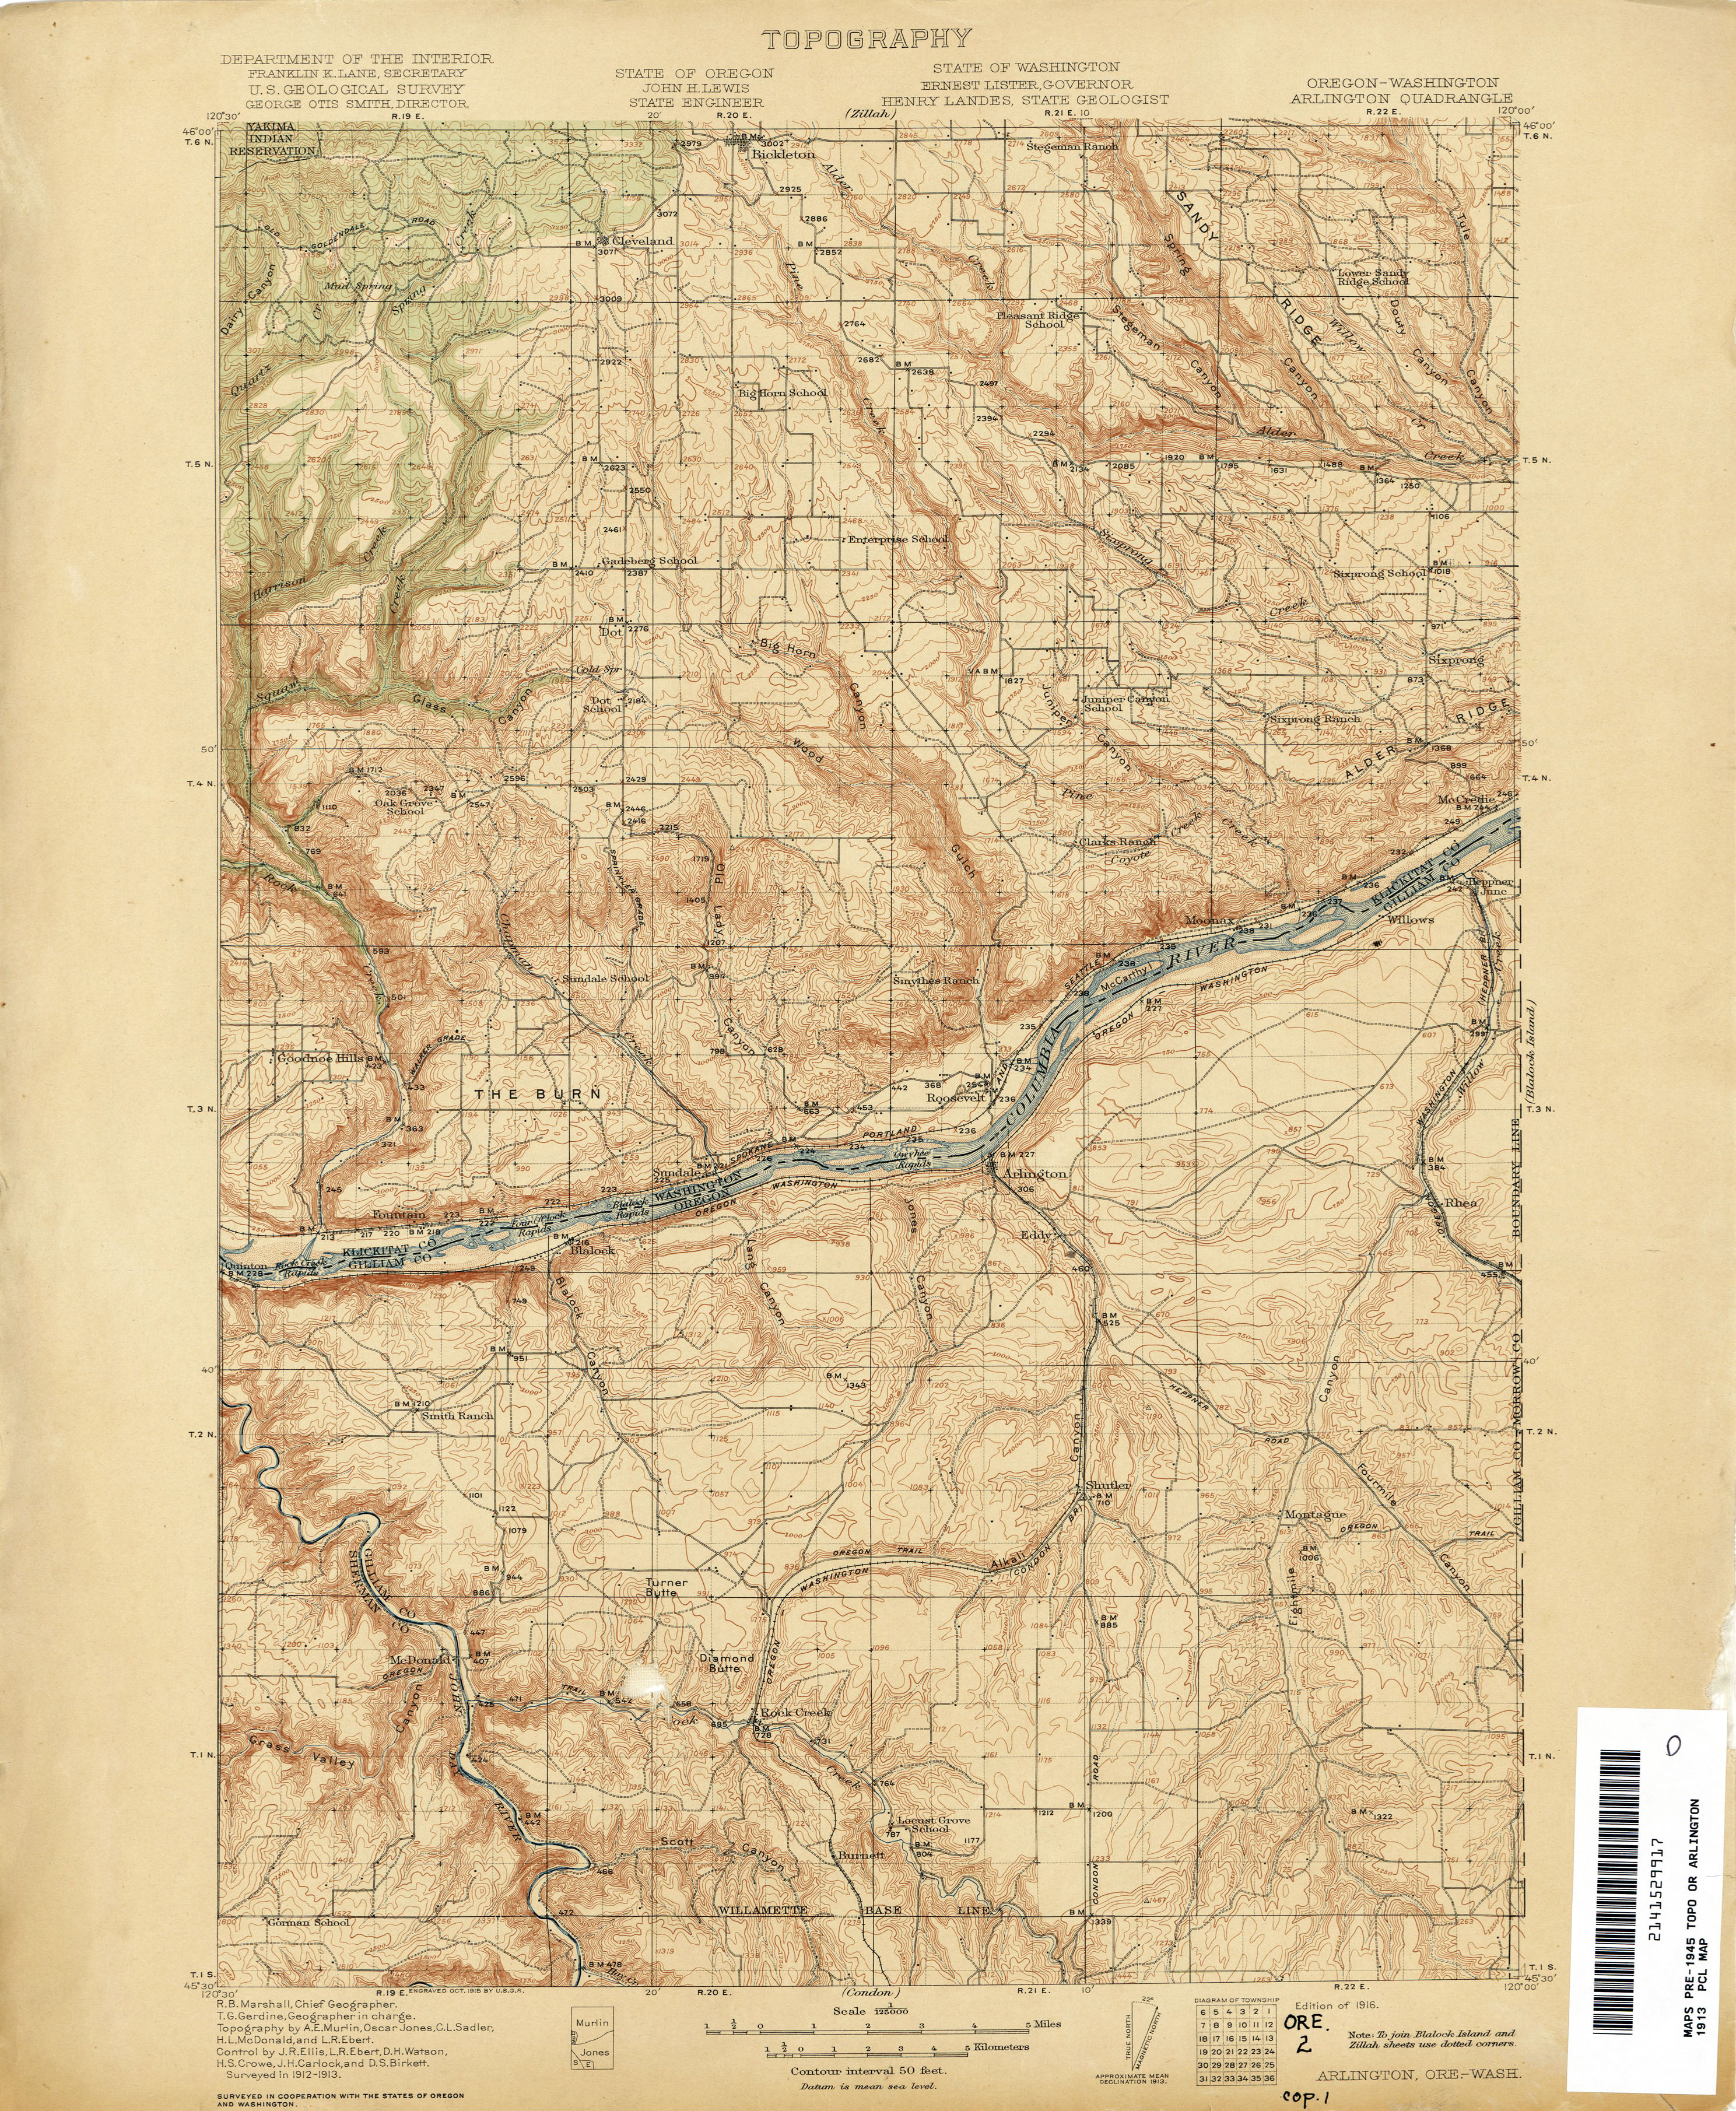 Oregon Historical Topographic Maps PerryCastañeda Map Collection - Topo map of washington state